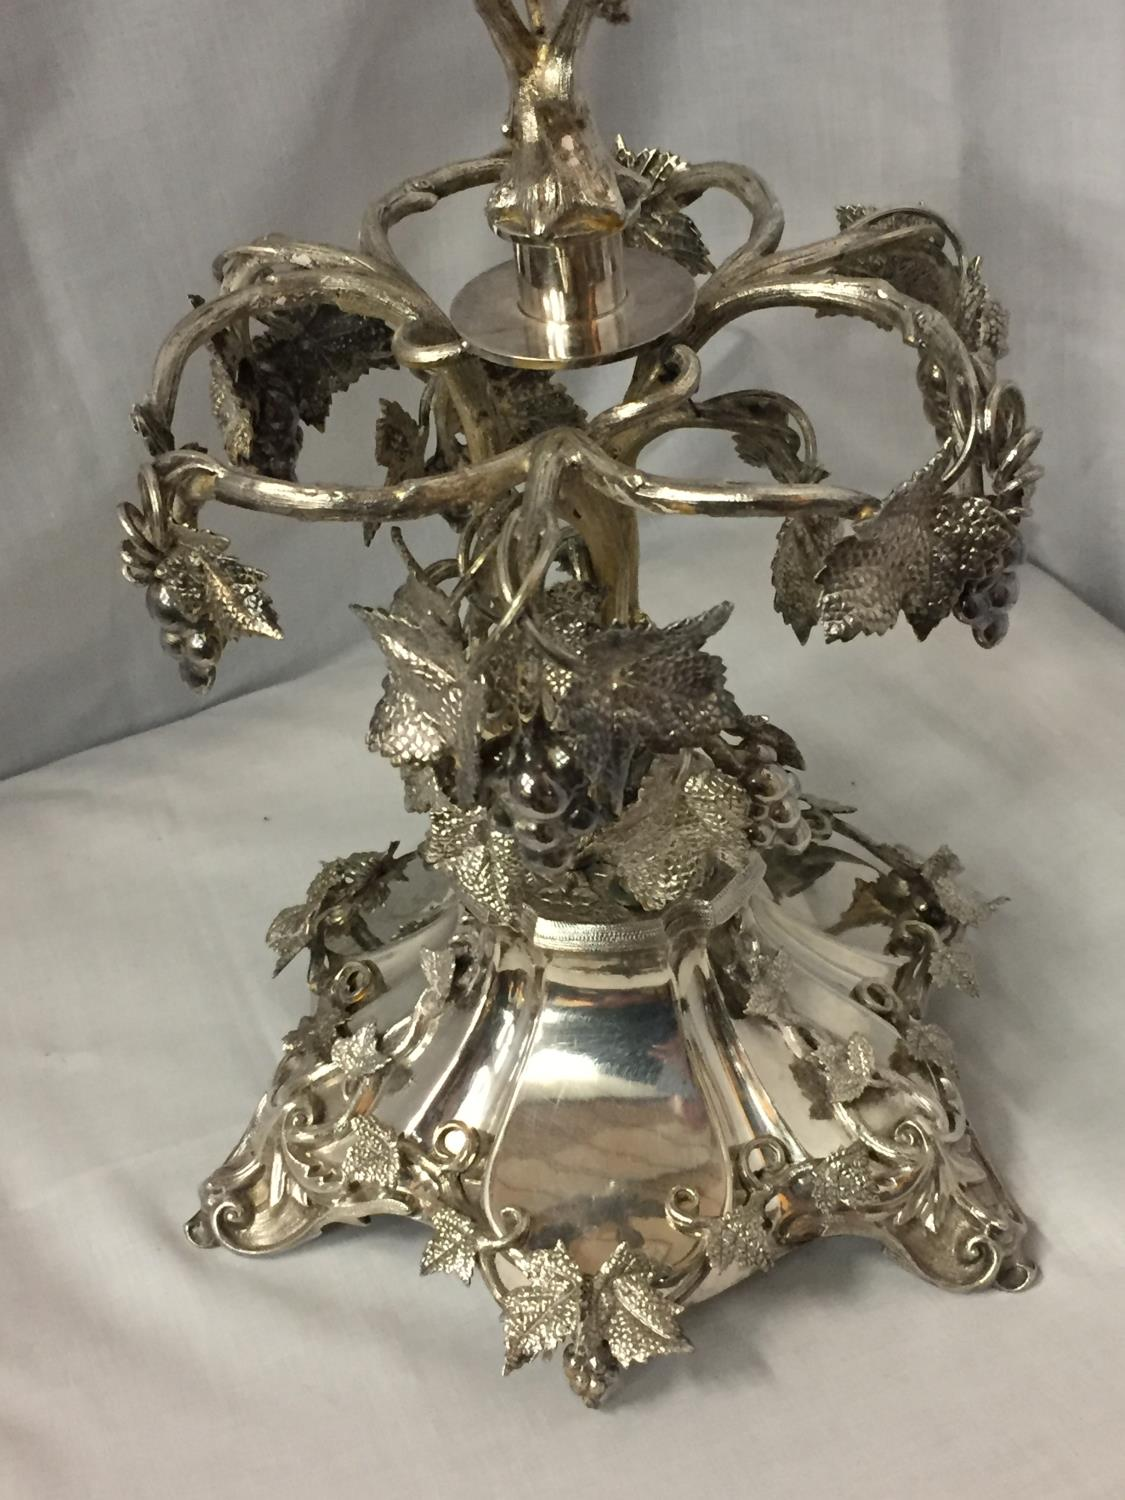 AN ORNATE SILVER PLATED EPERGENE WITH GLASS FLUTE HEIGHT 65CM - Image 3 of 5